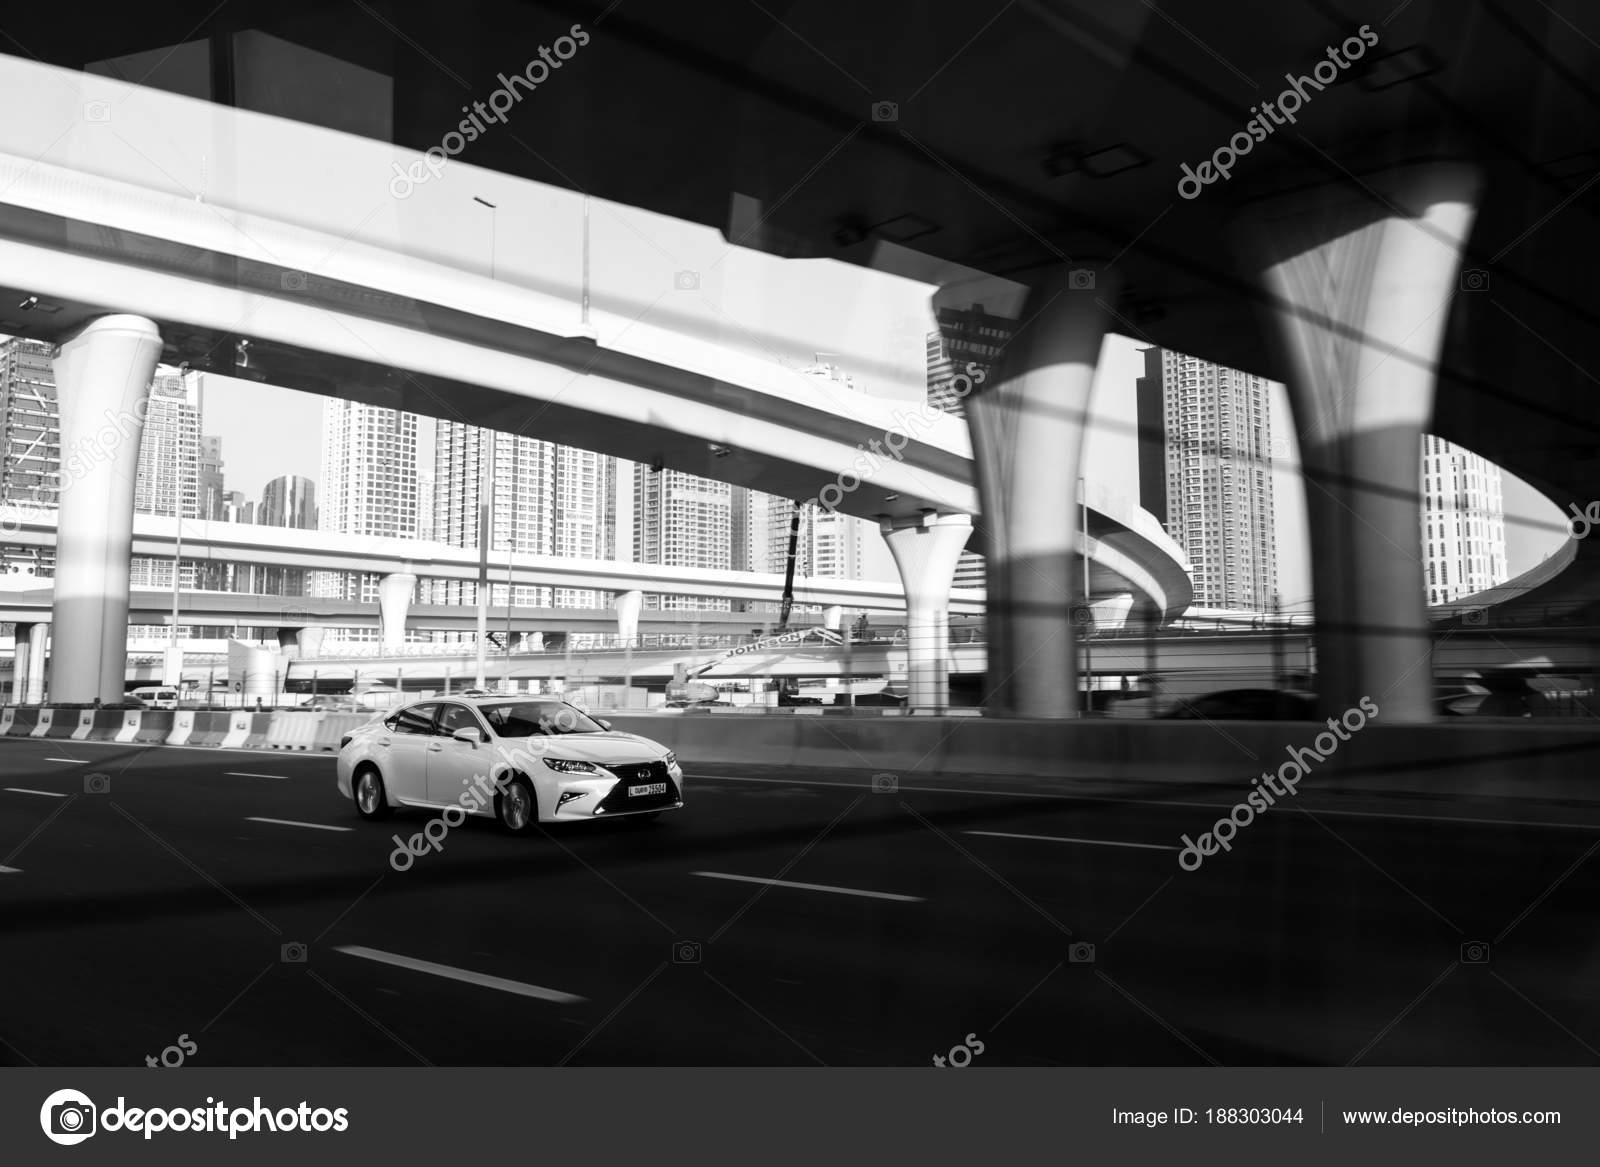 Dubai uae february 20 2018 lexus rides on the highway against the backdrop of road junctions and overpasses black and white photo photo by